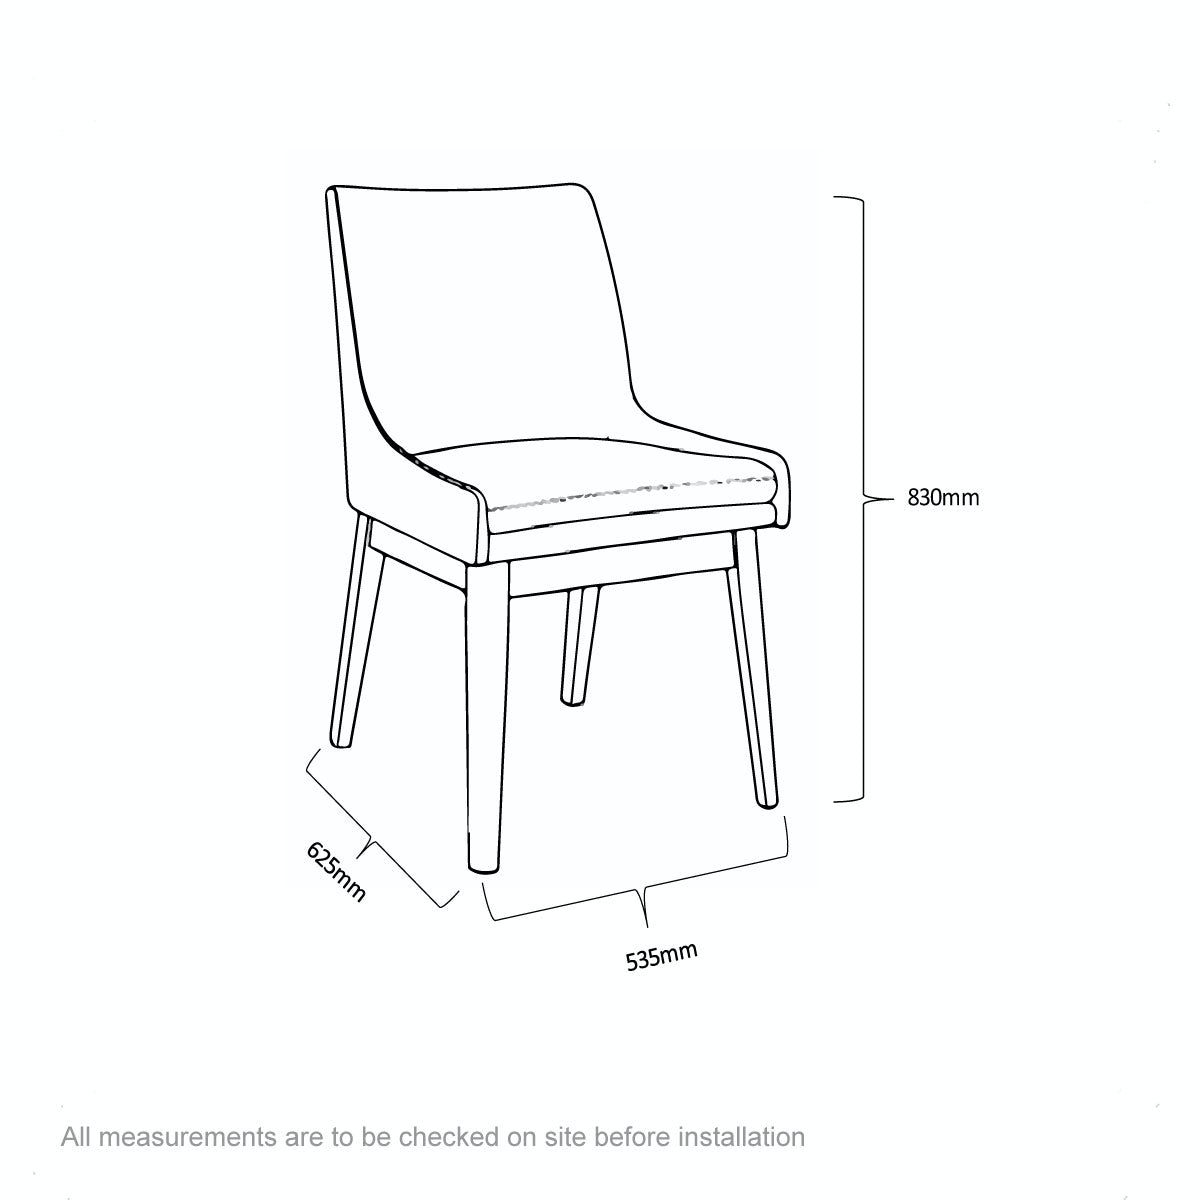 Dimensions for Lincoln oak and beige pair of dining chairs